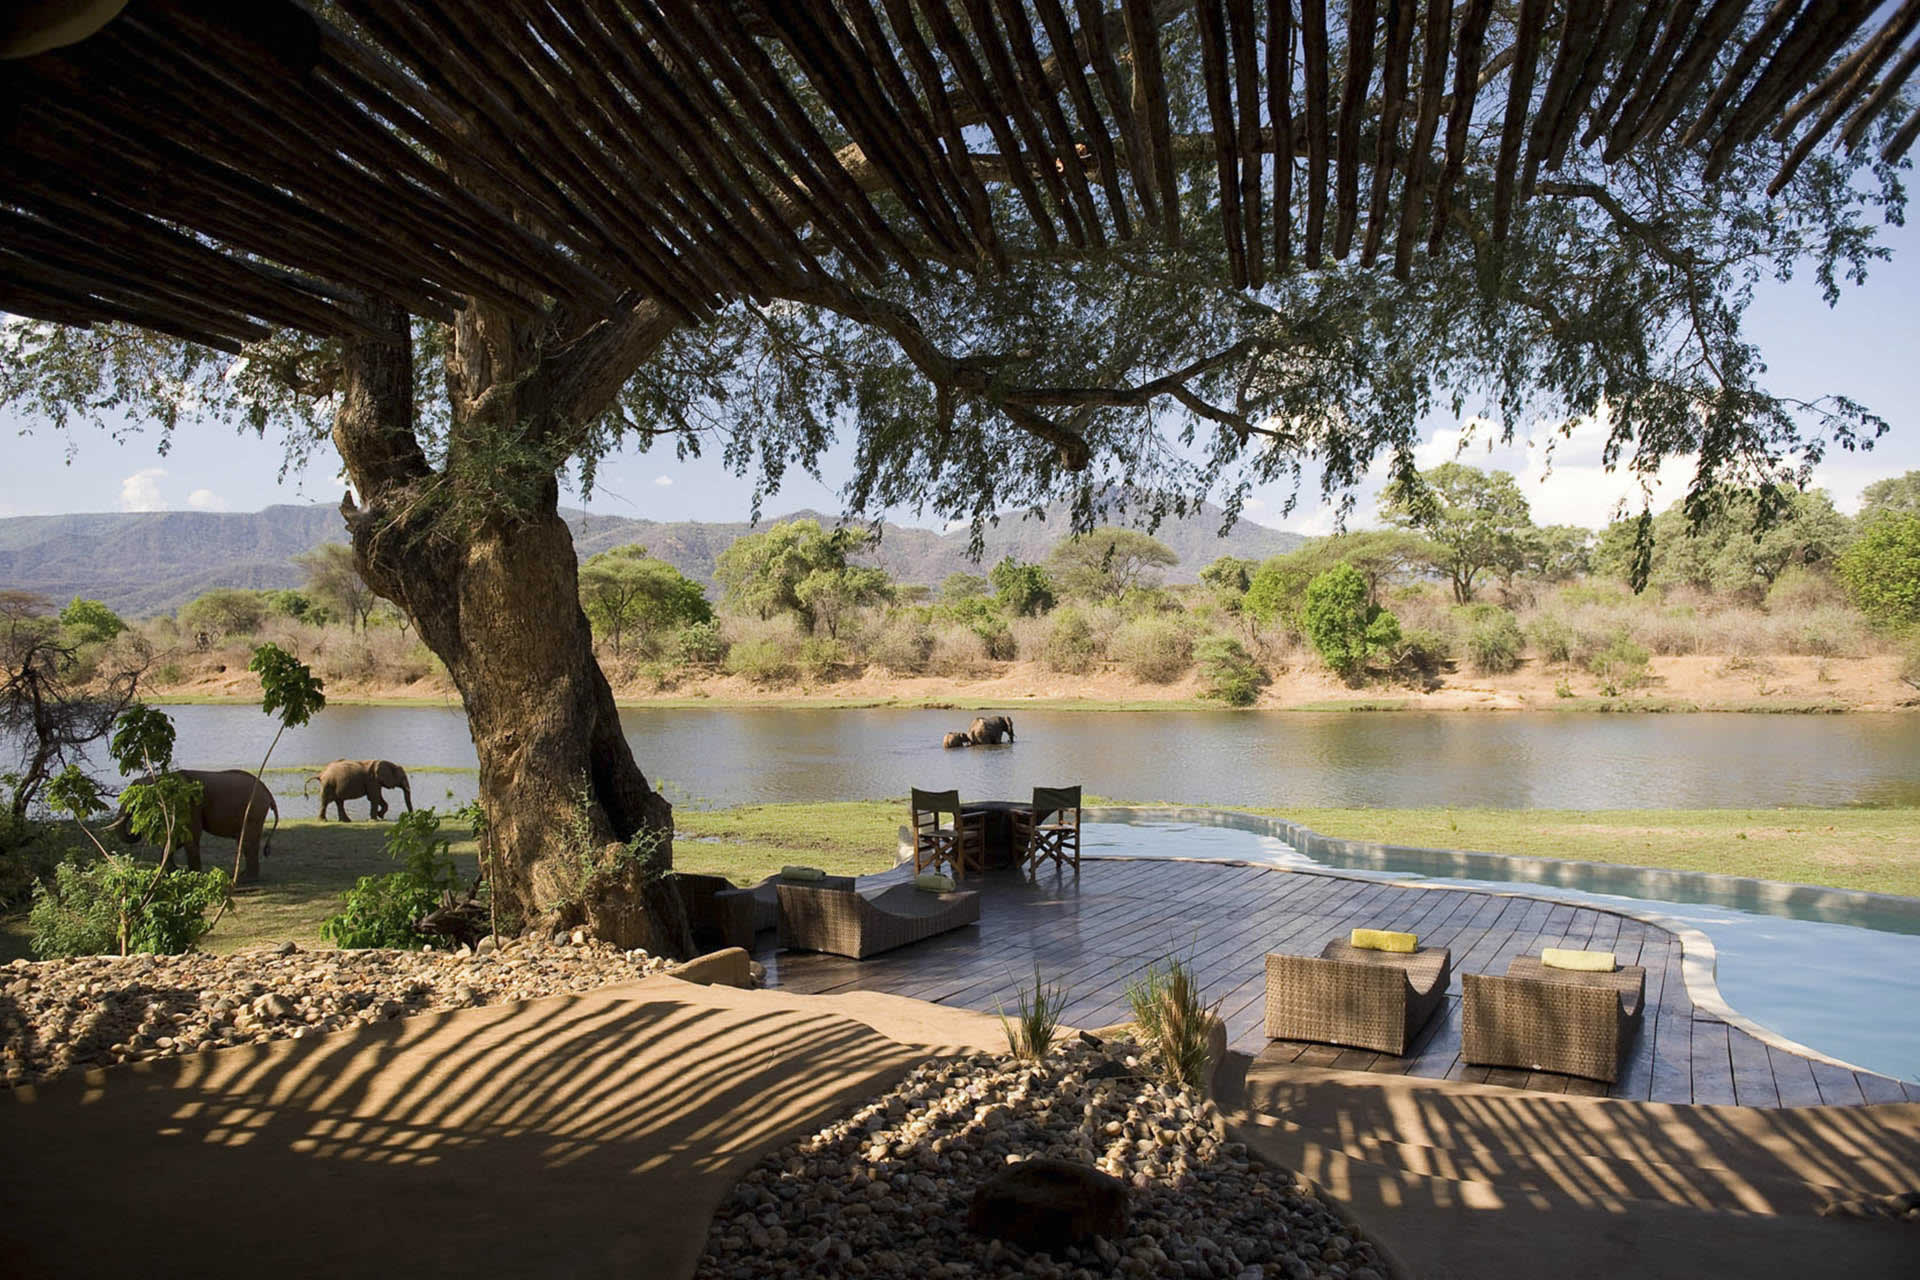 Bank Of Zambia Home Zambia Luangwa Valley Home Of The Walking Safari